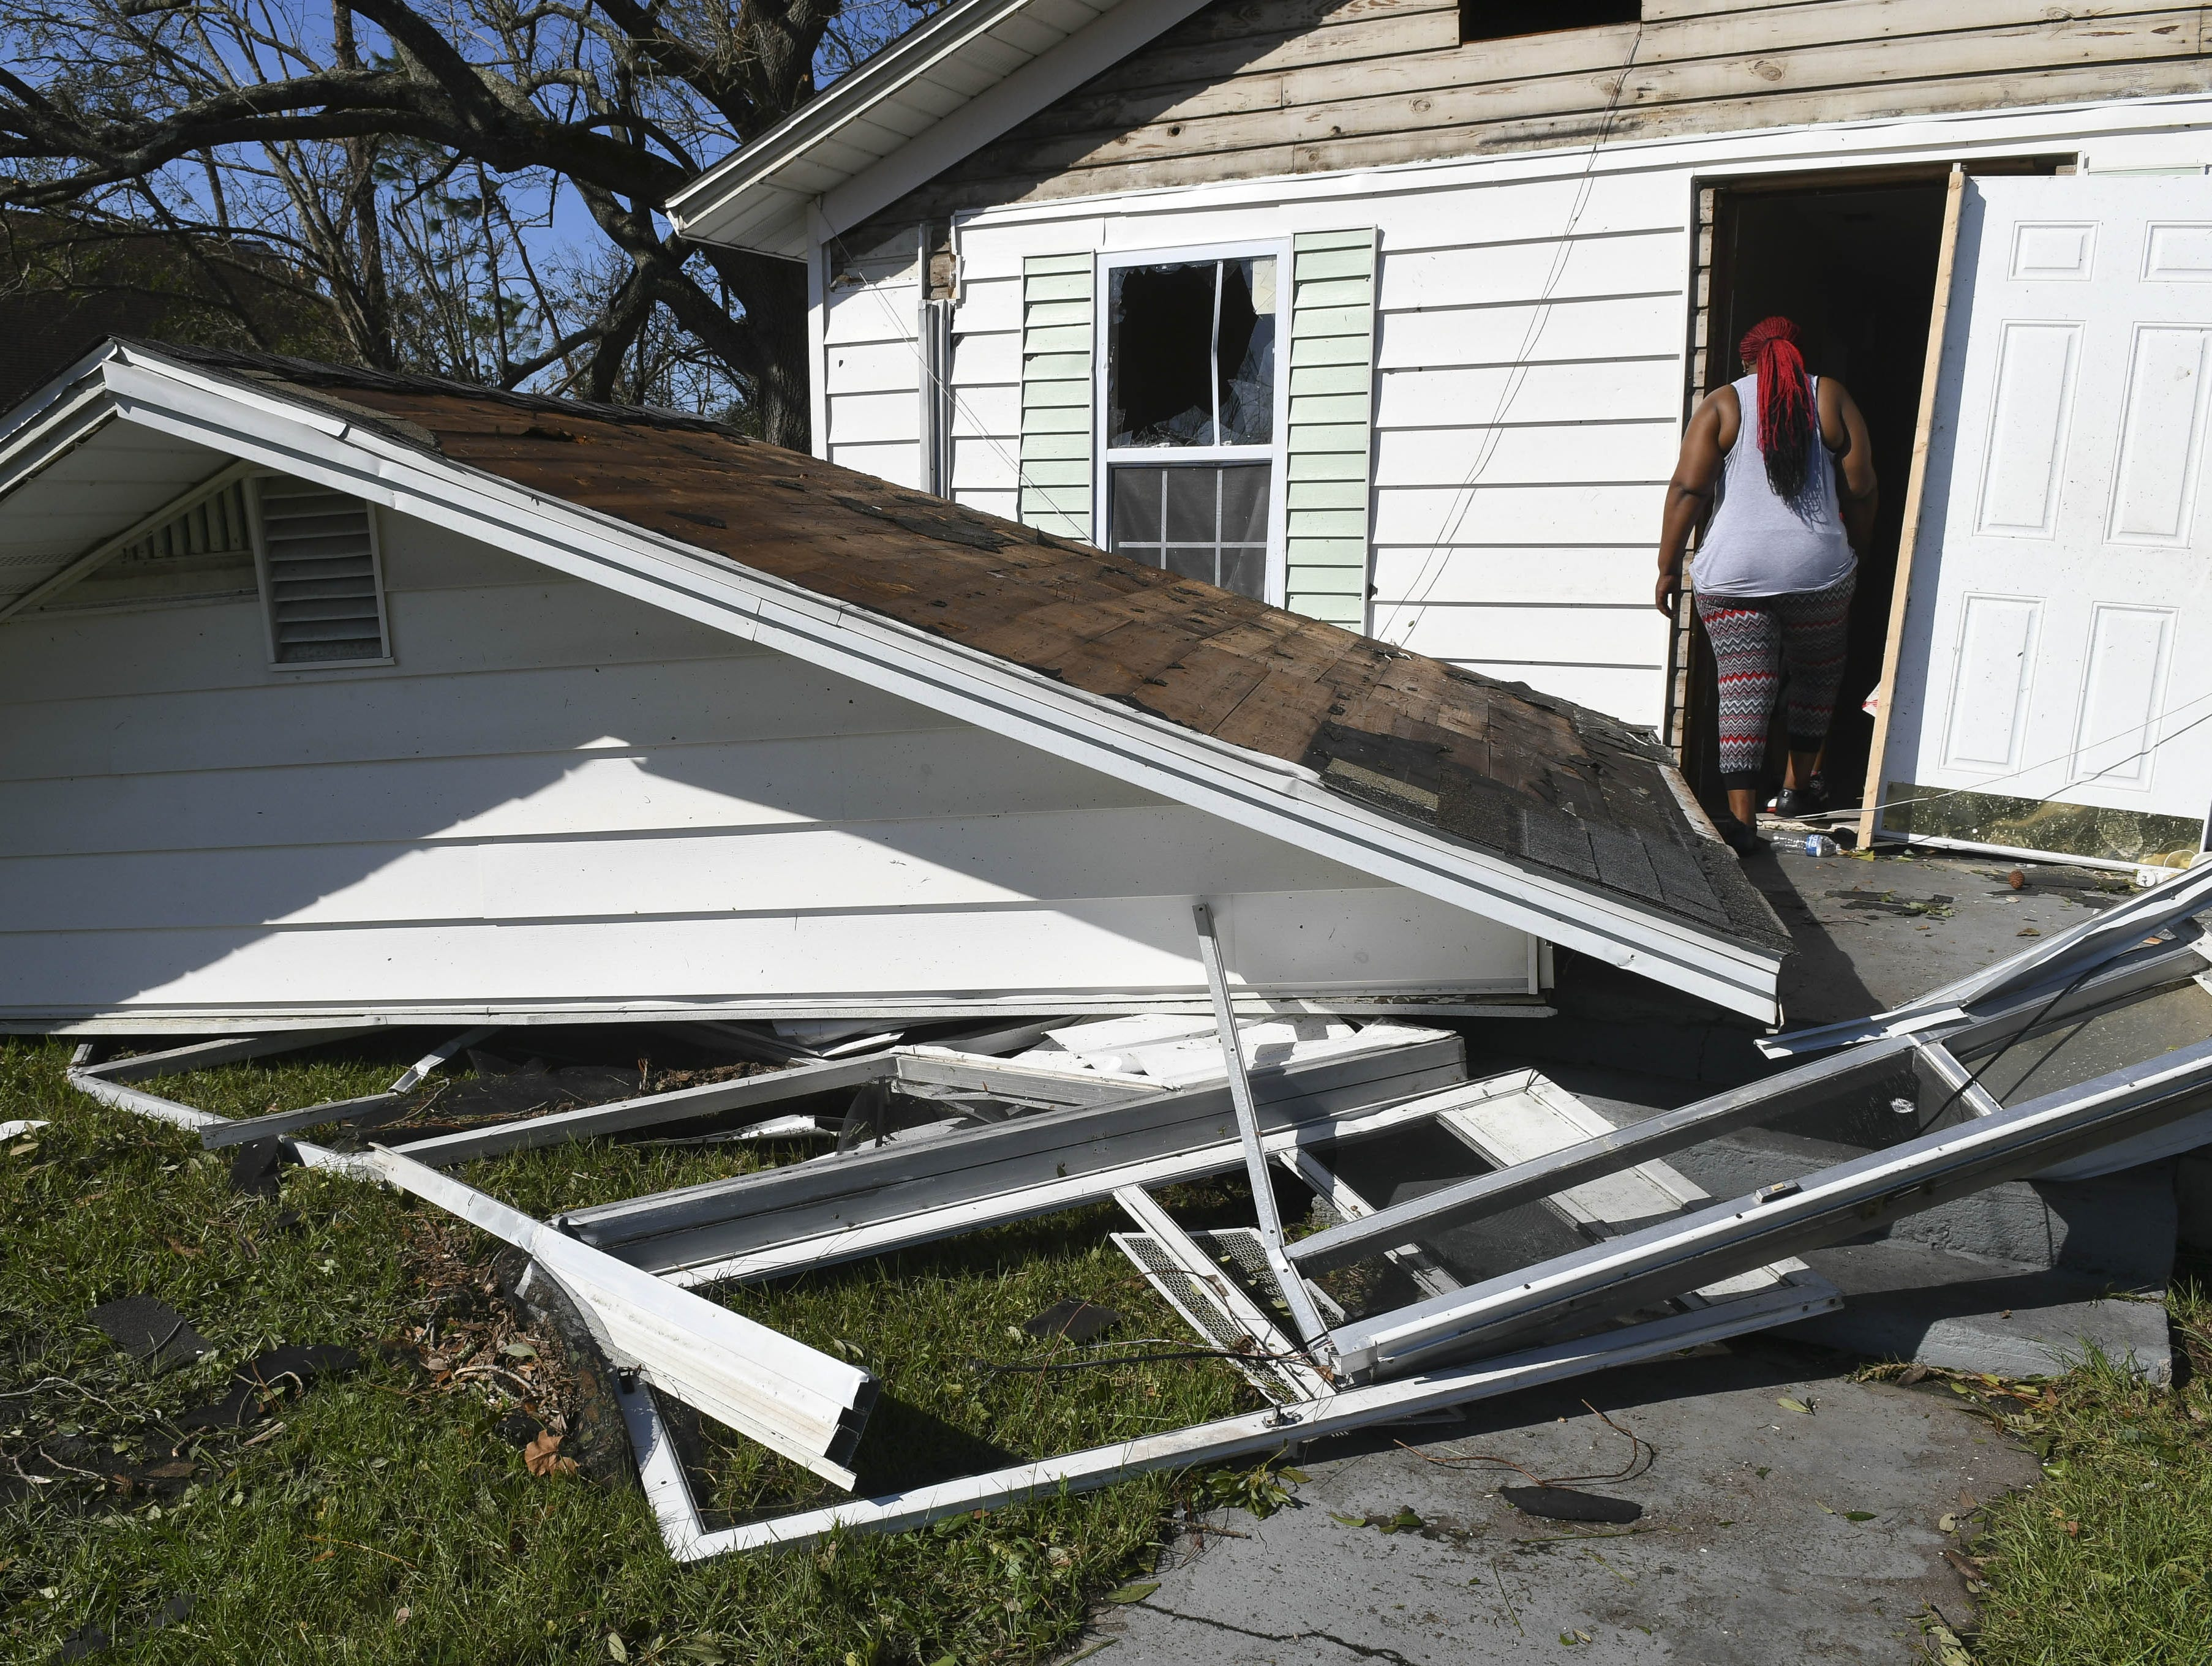 Sheila Dukes heads into what's left of her rental home in Panama City, FL Thursday. Hurricane Michael removed the front and back porches along with most of the roof.